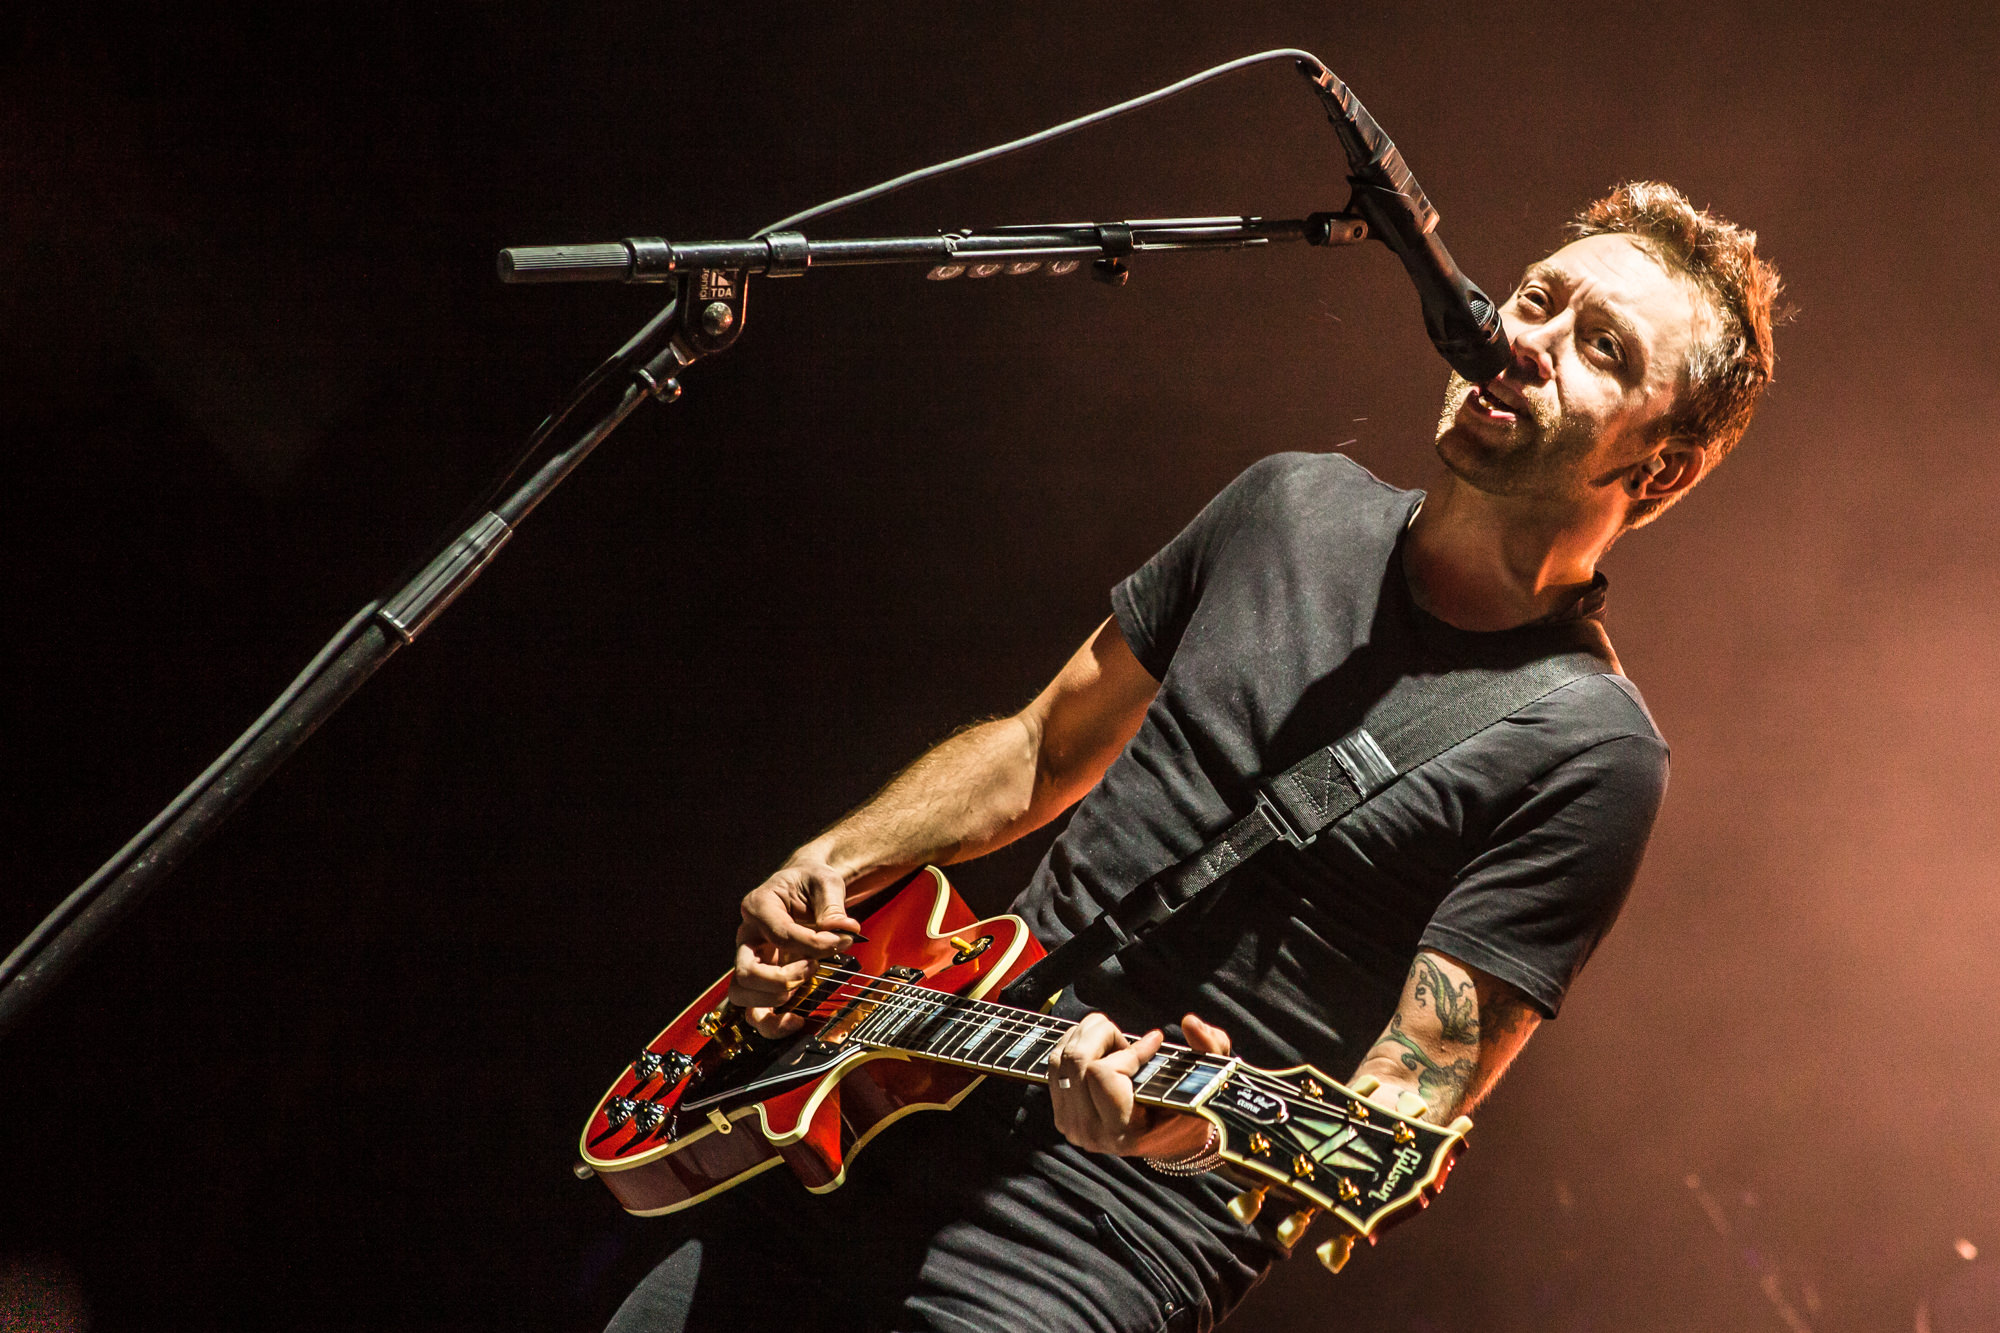 rise-against-concert-event-music-photography.jpg